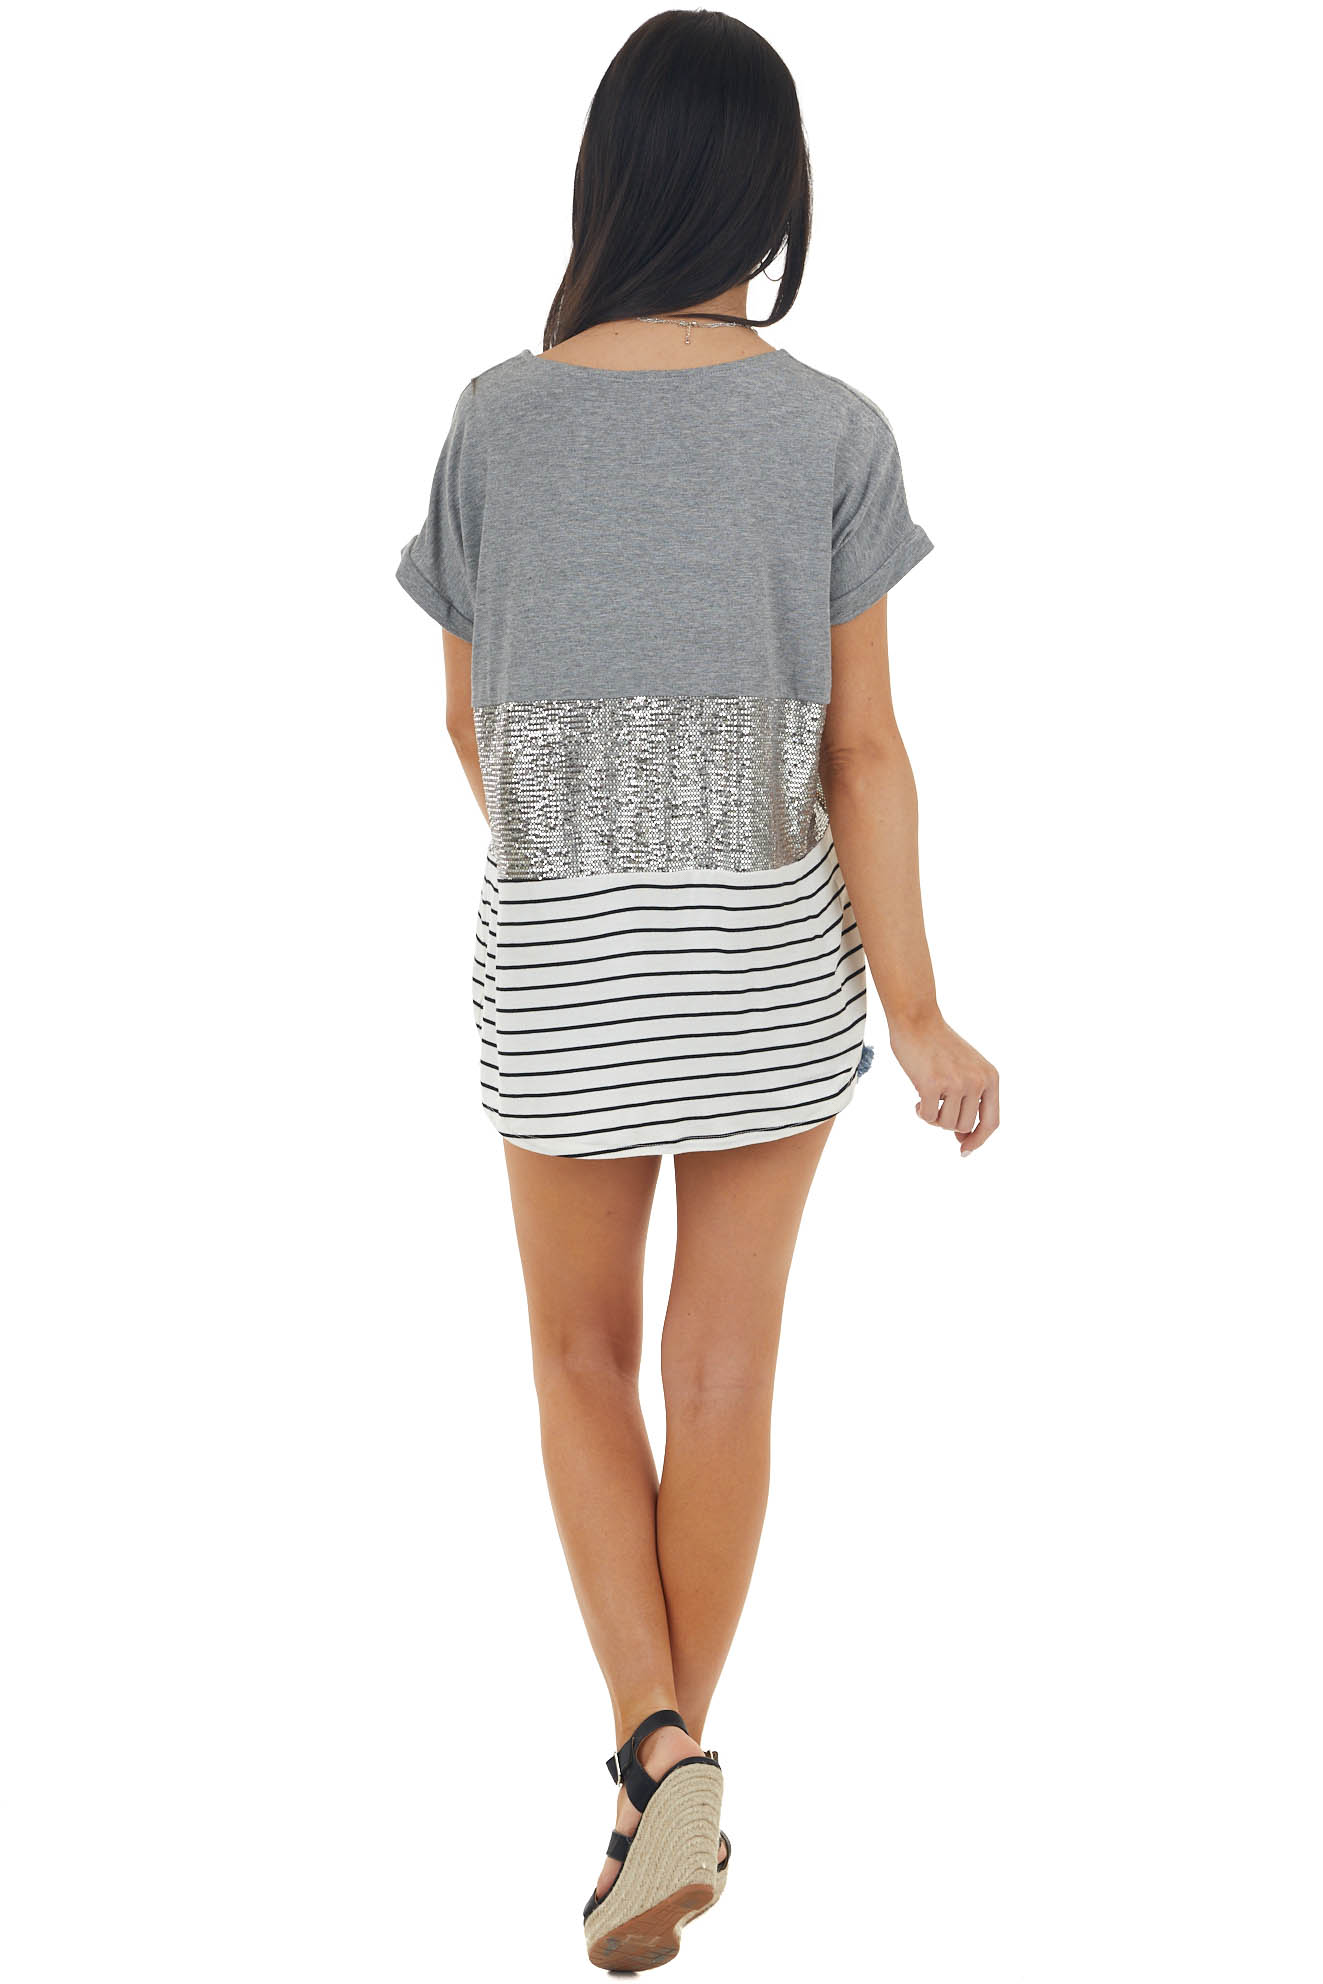 Stone Colorblock Short Sleeve Knit Top with Sequins